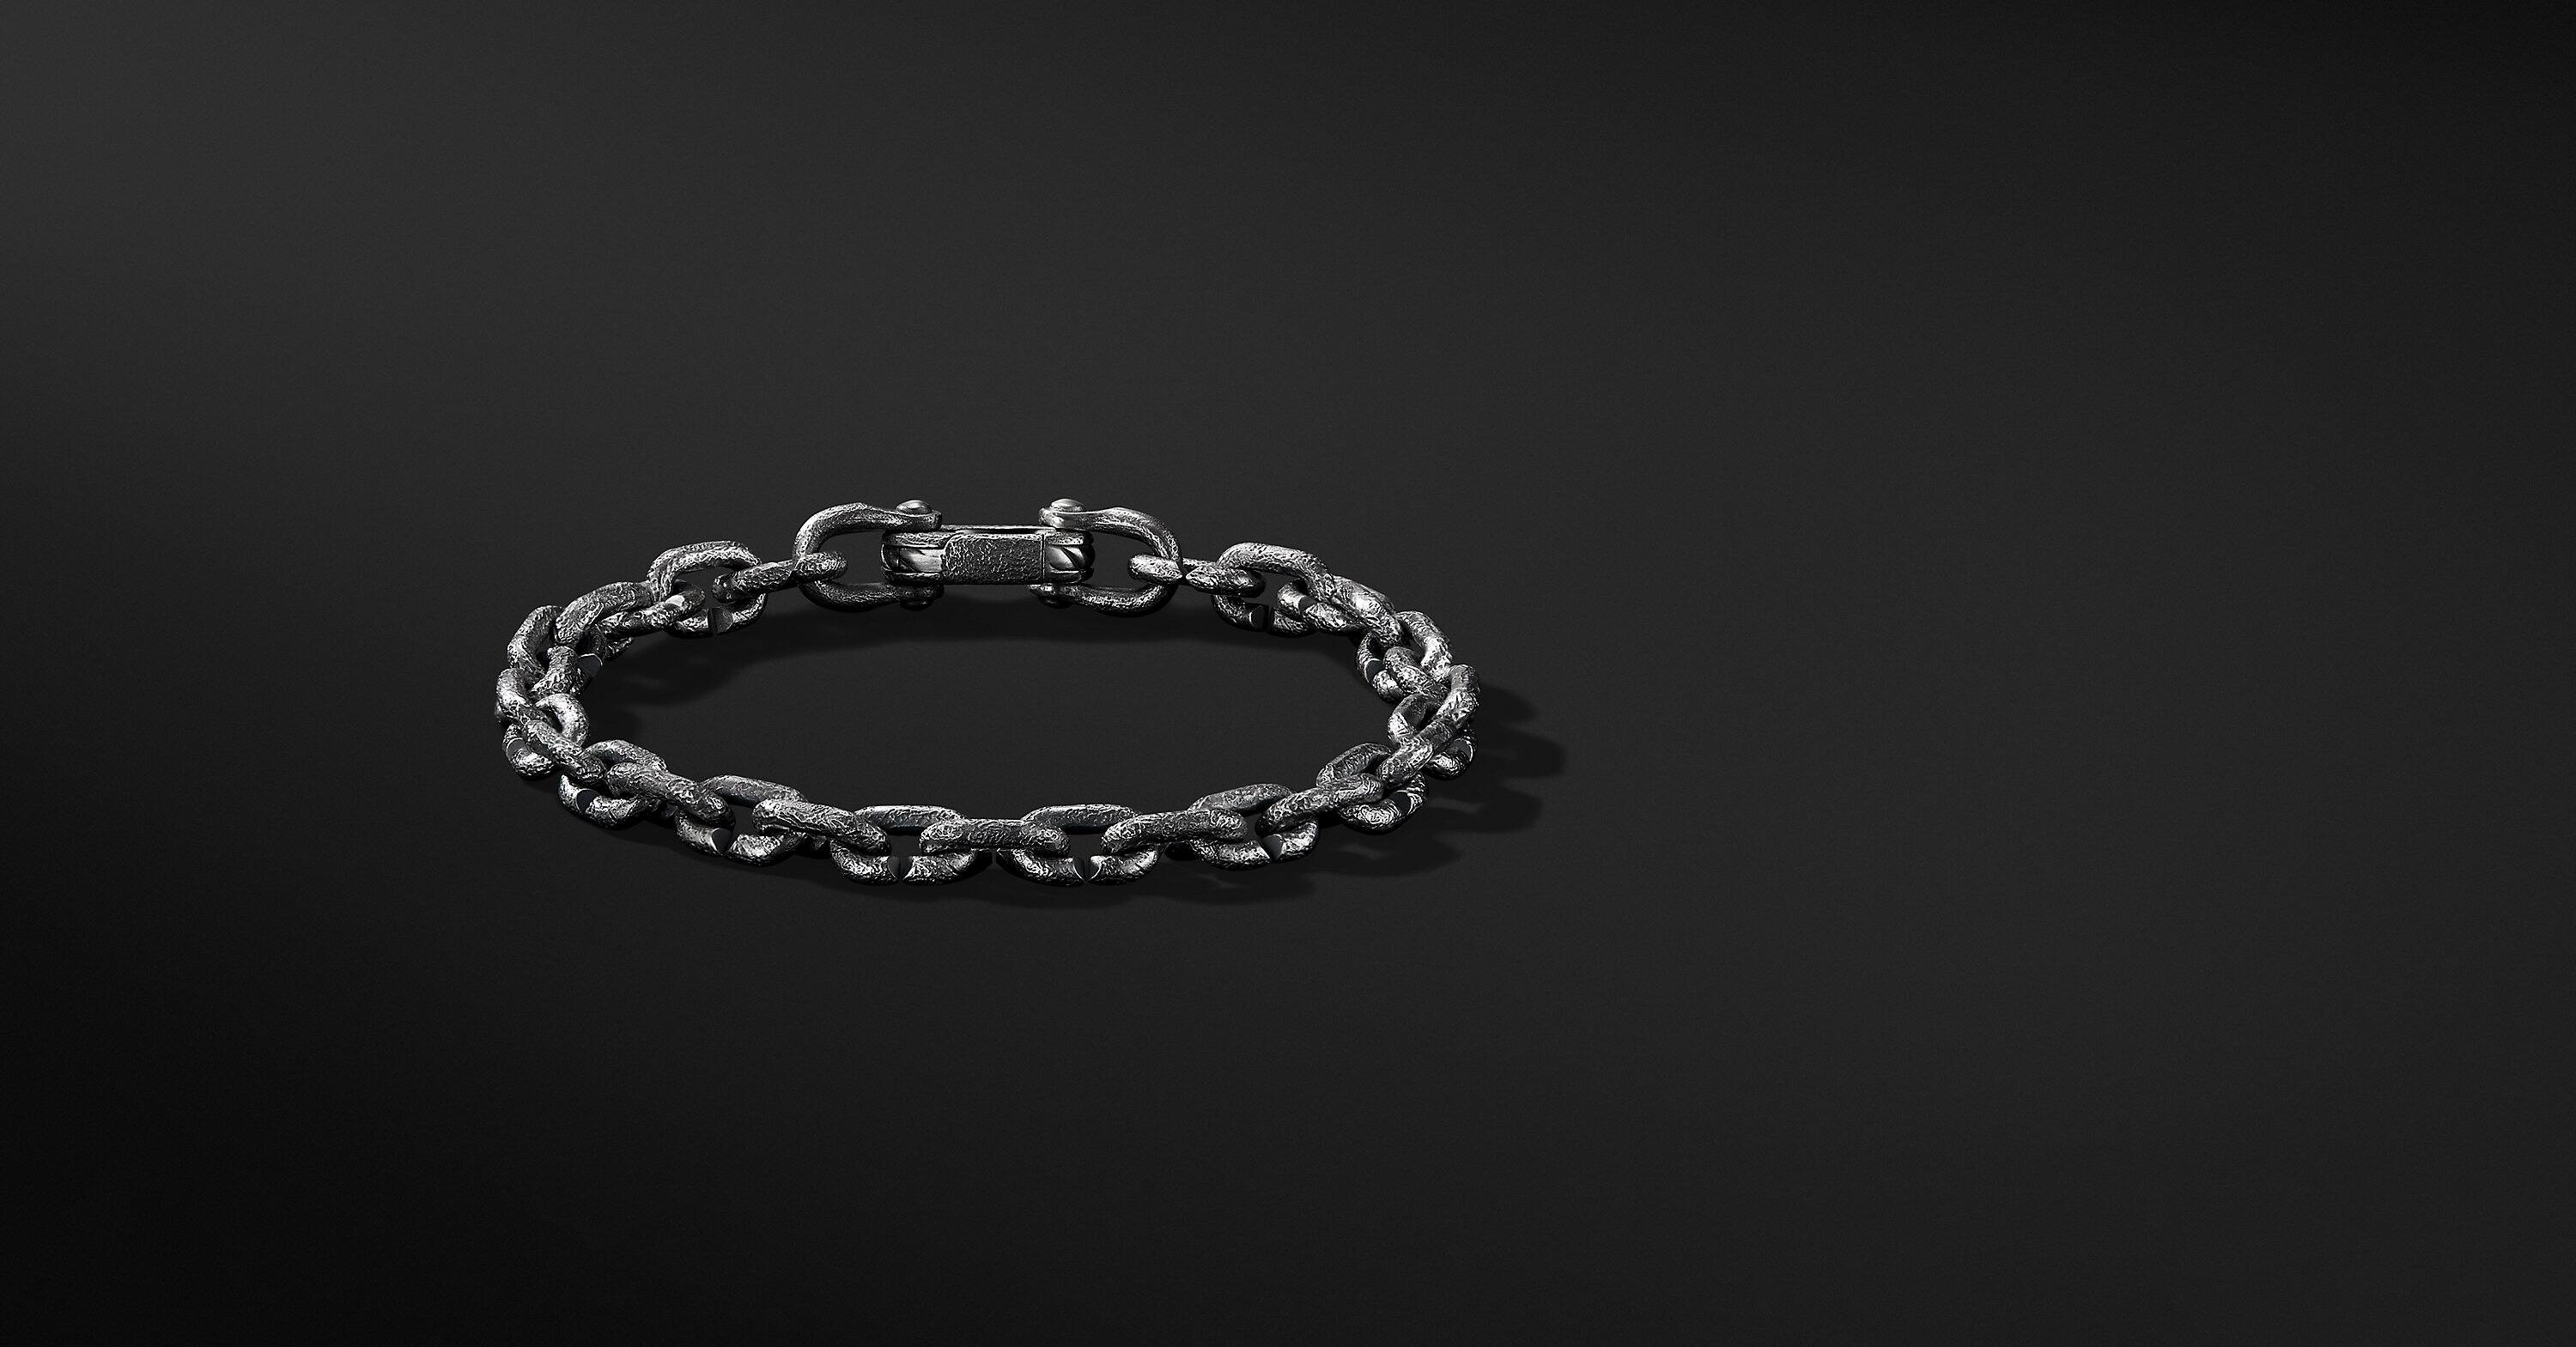 Shipwreck Chain Bracelet, 6mm